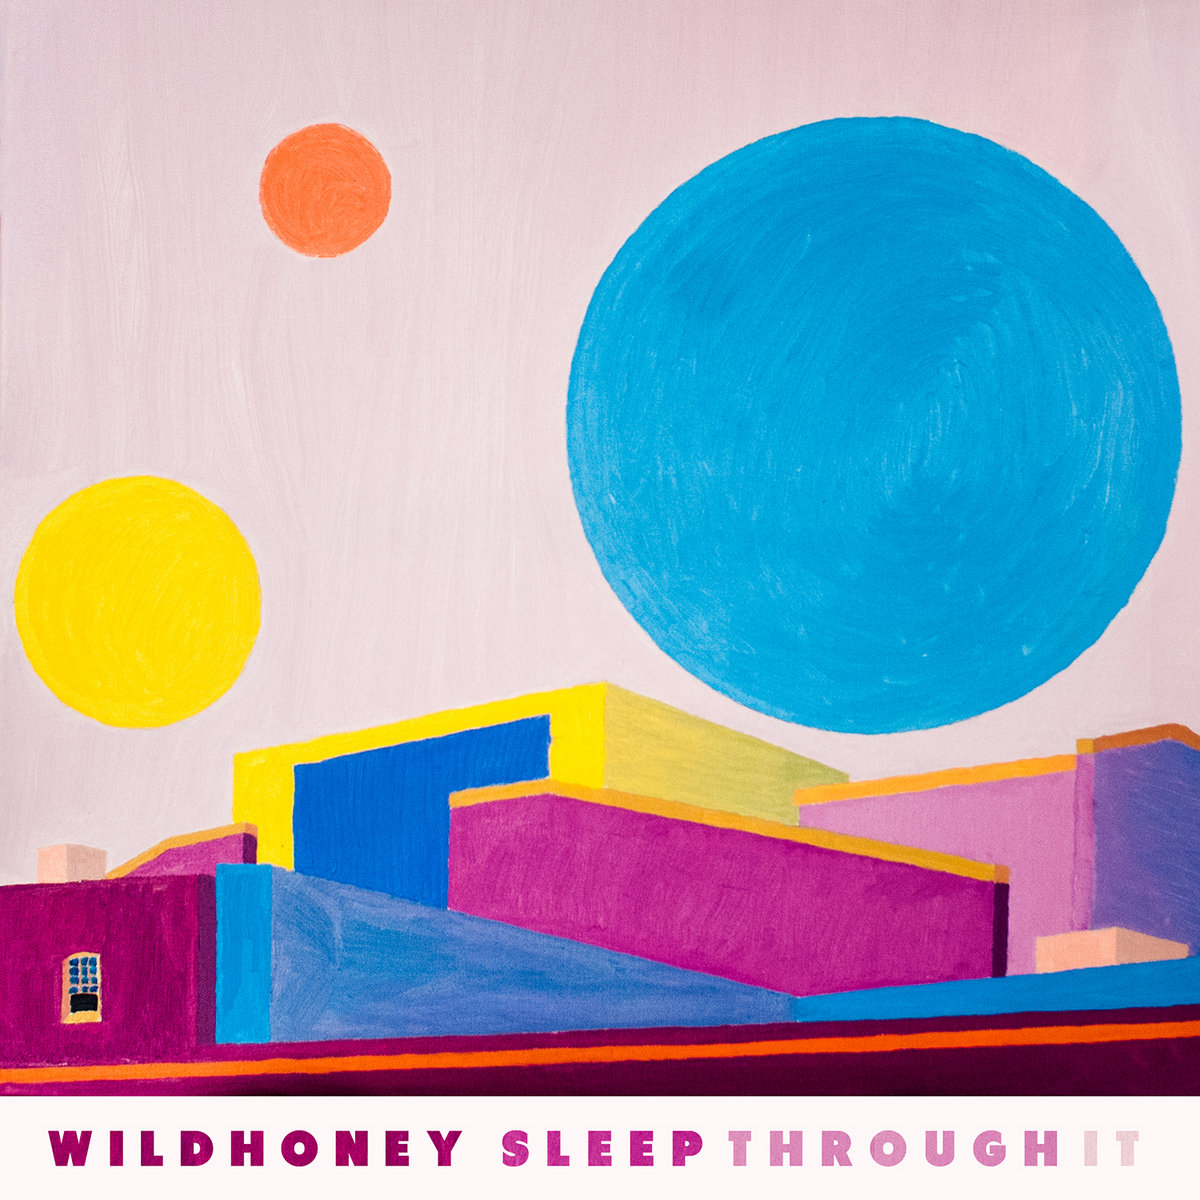 wildhoney sleep through it deranged records no touching dripping wet parade of flesh sons of hermann dallas